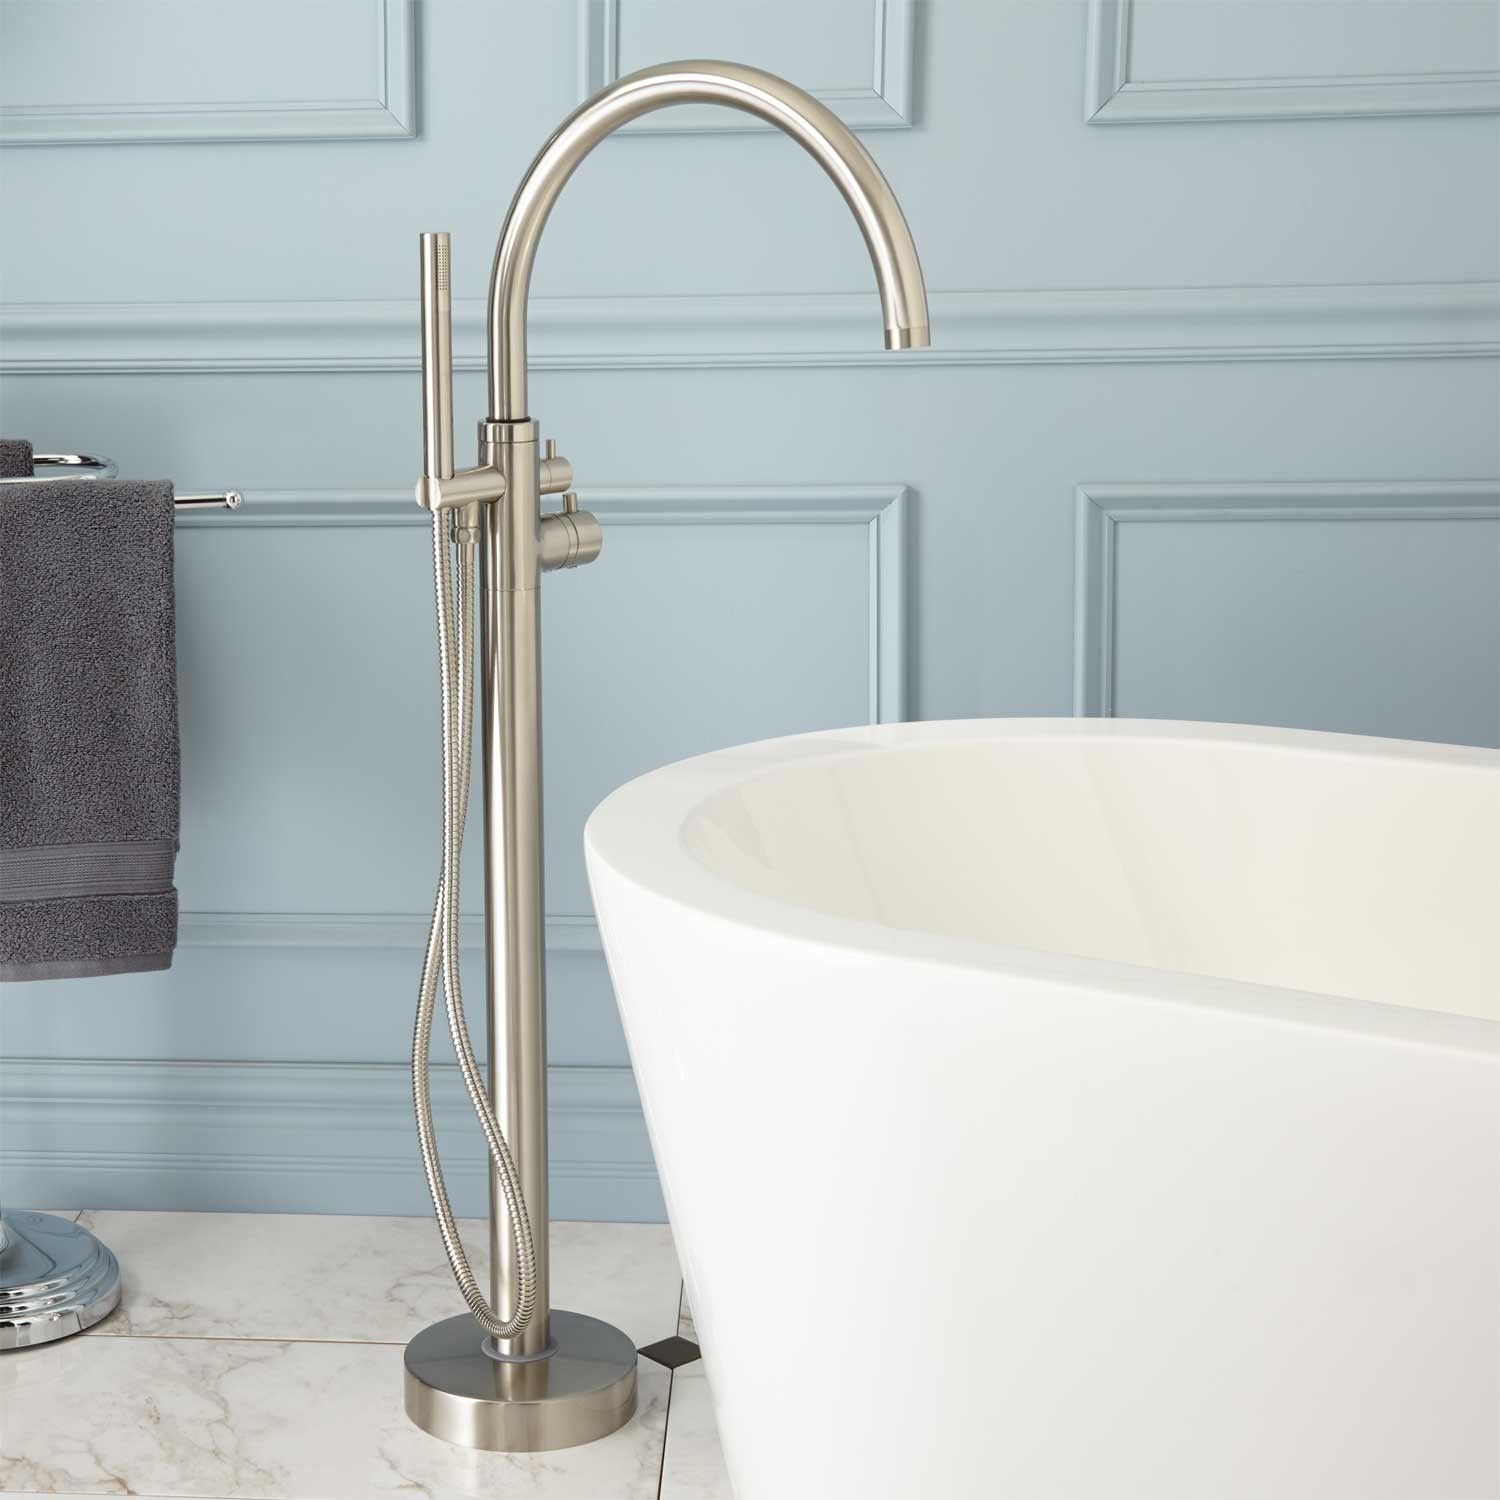 Linnea Freestanding Thermostatic Tub Faucet | Faucet, Tubs and Bath